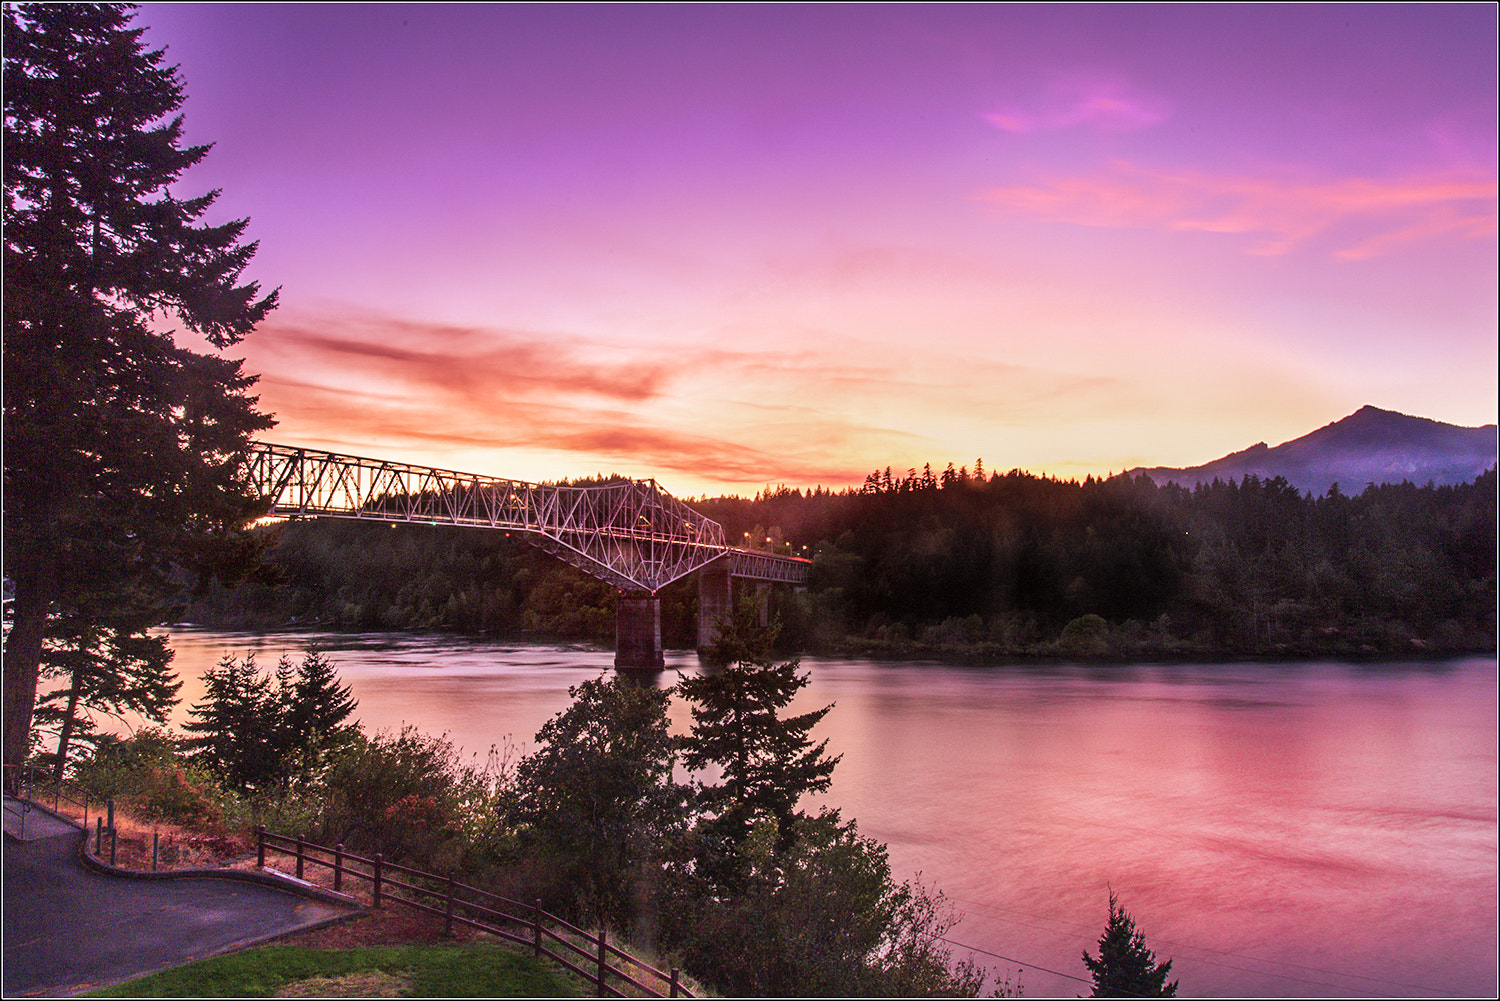 Photograph Bridge at sunset by Brian Clark on 500px